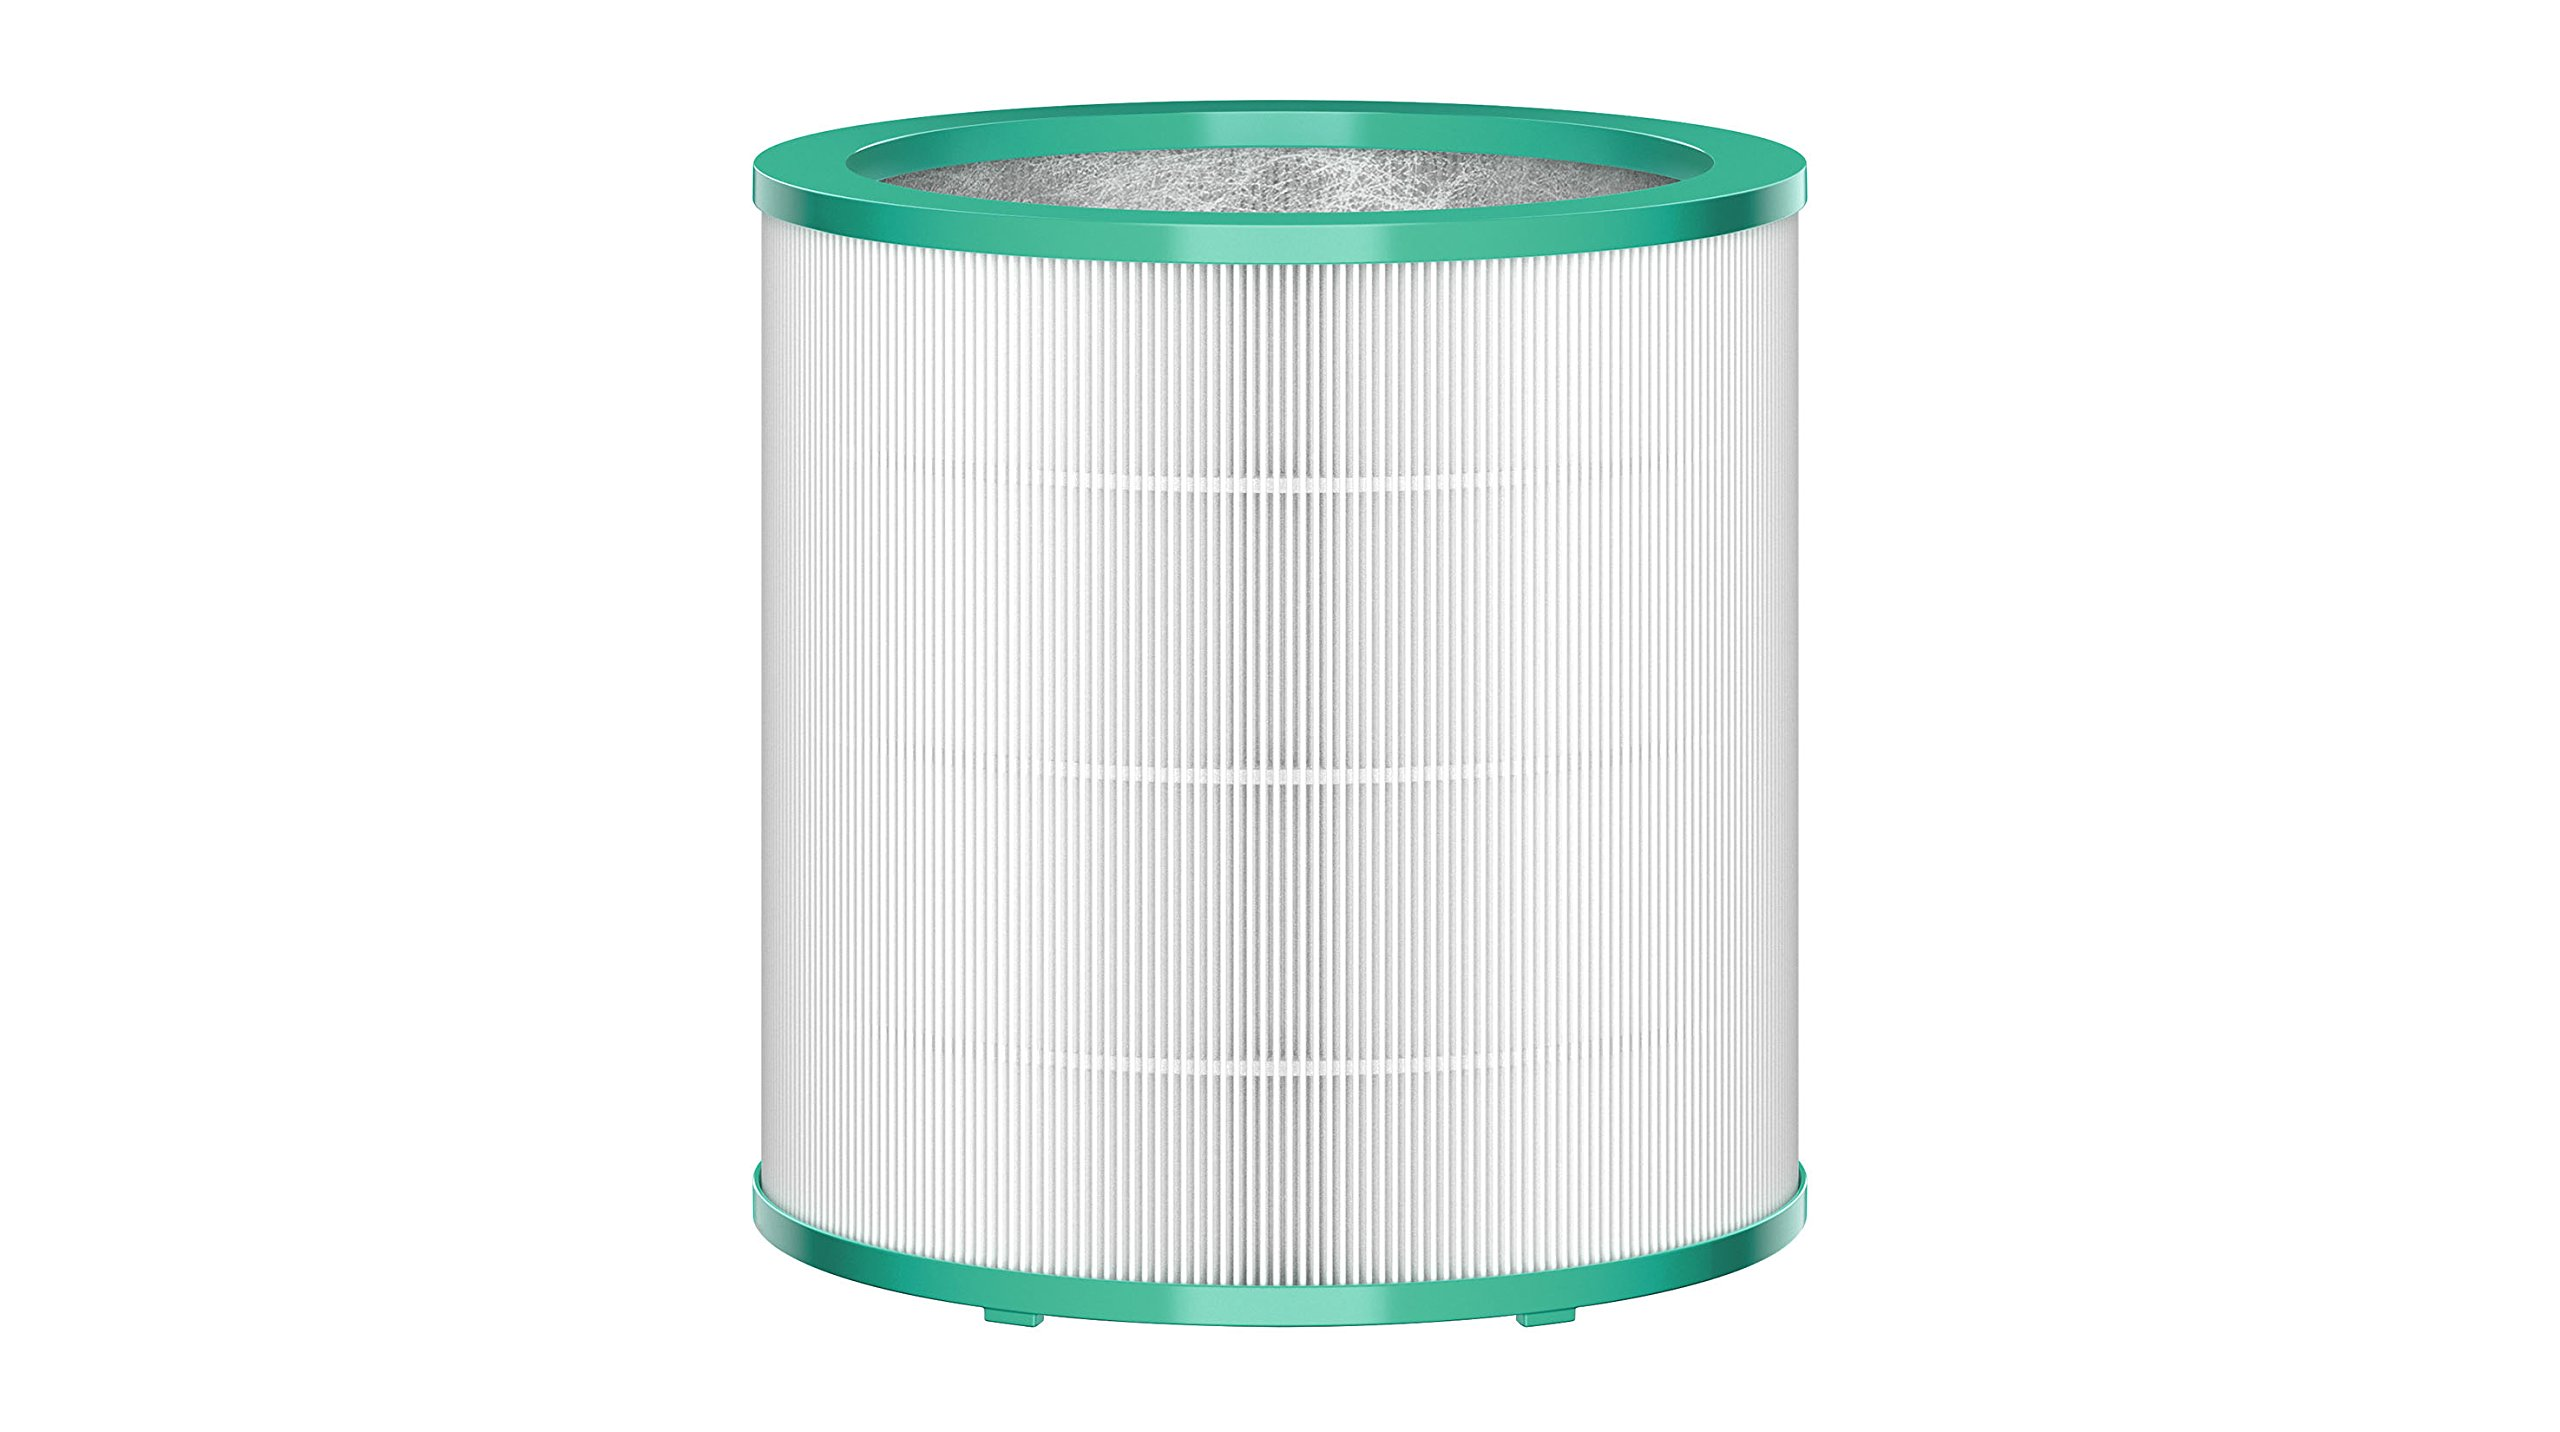 Dyson Tower Purifier Replacement Filter by Dyson